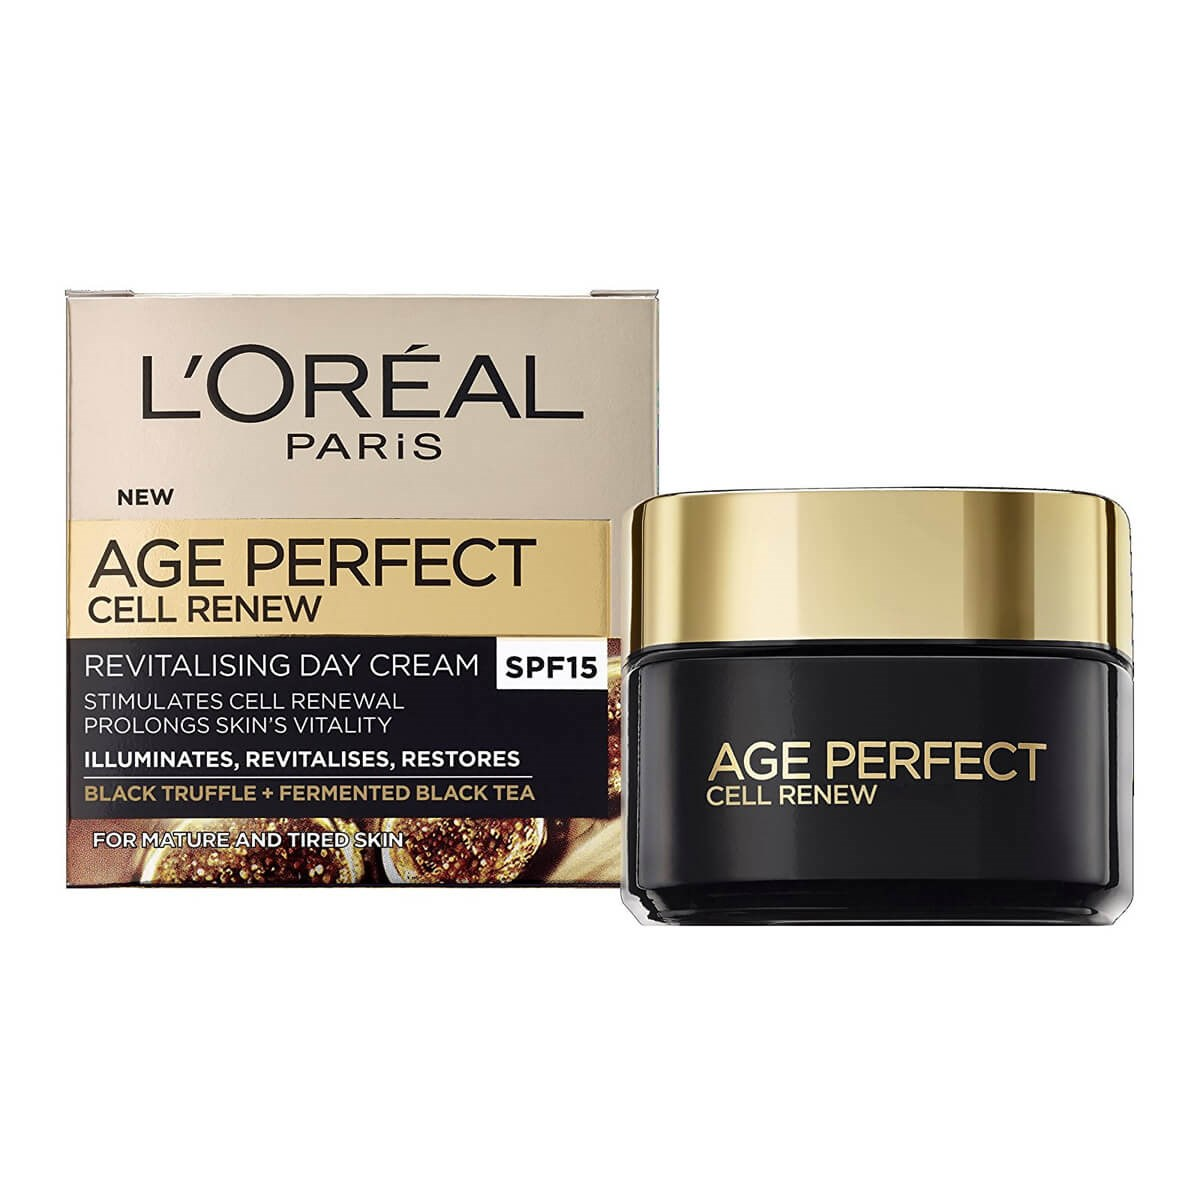 L'Oreal Paris Age Perfect Cell Renew Advanced Restoring Day Cream SPF 15